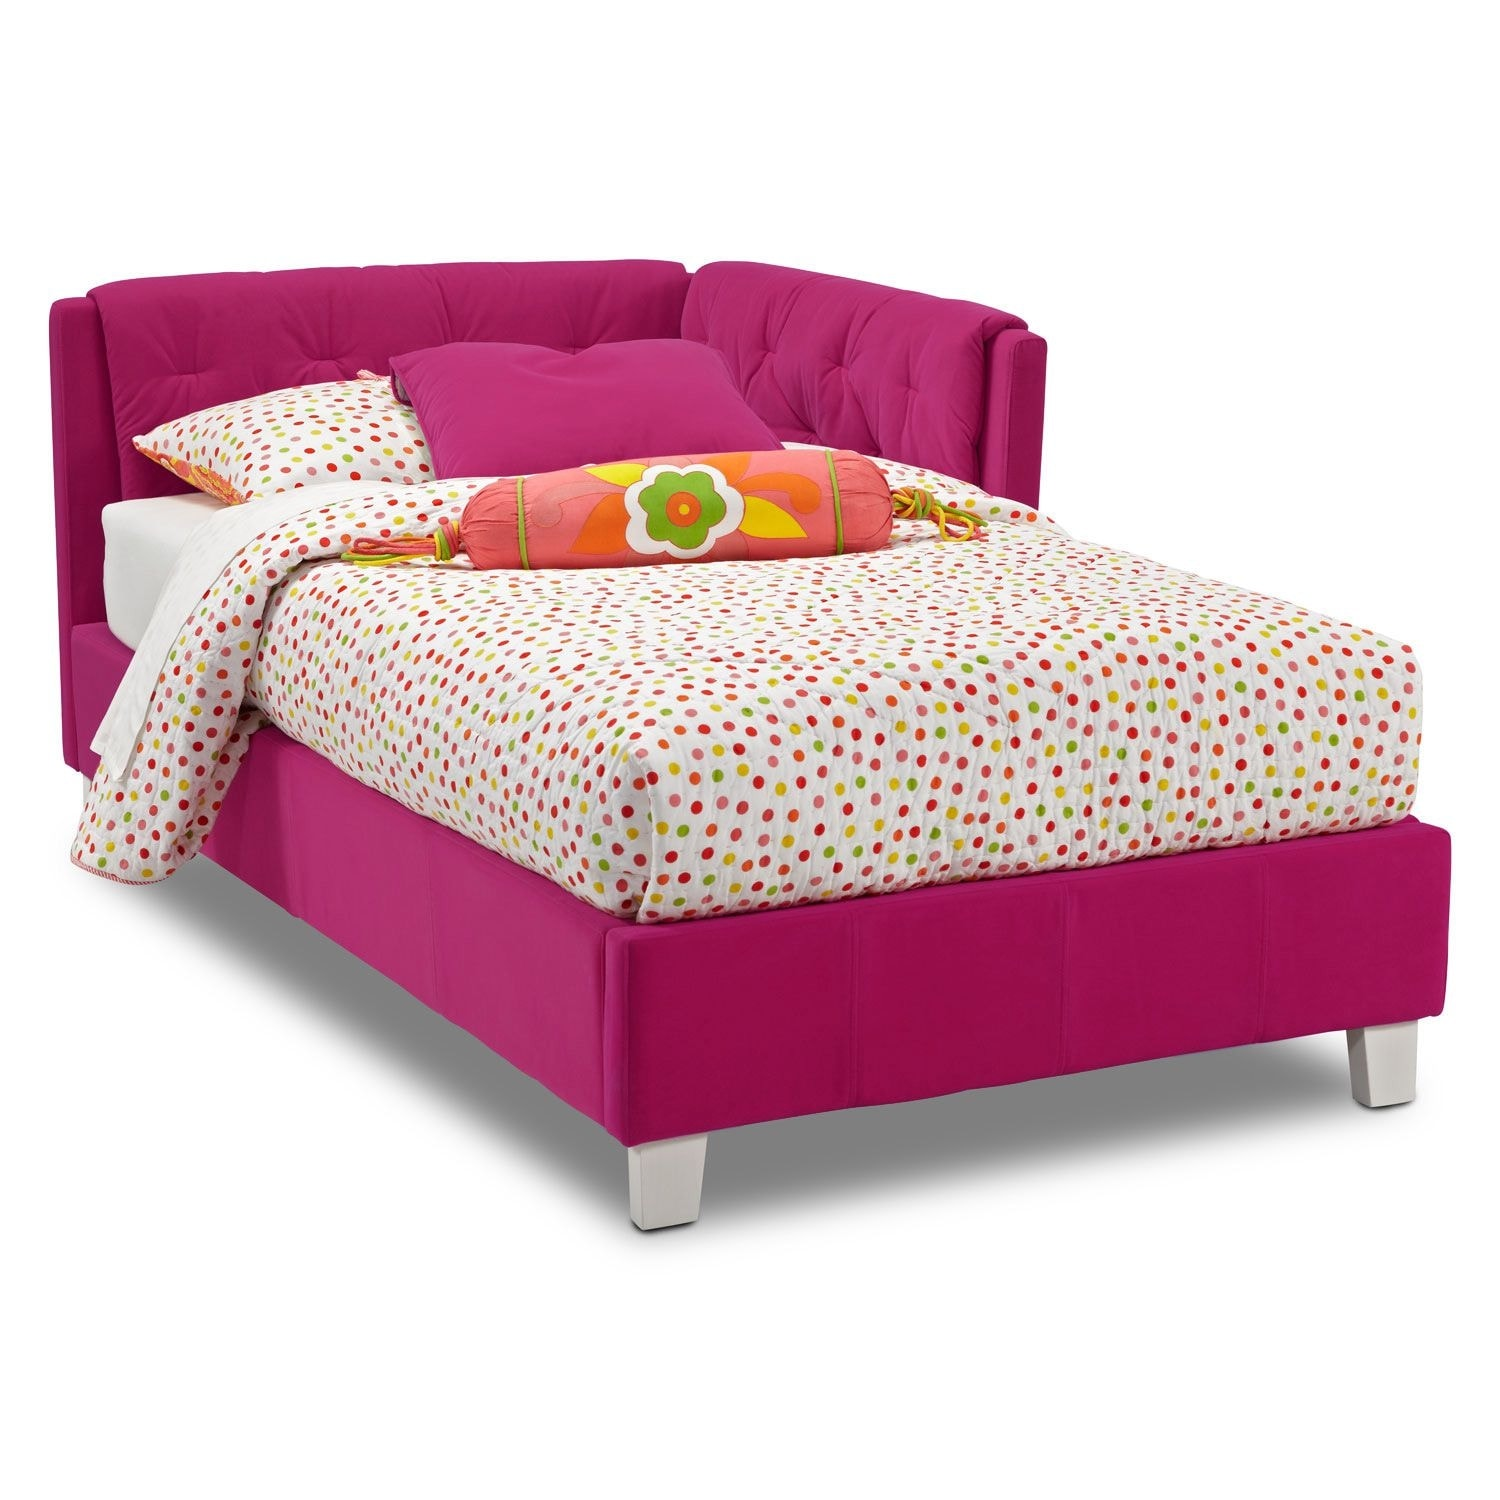 jordan twin corner bed pink value city furniture